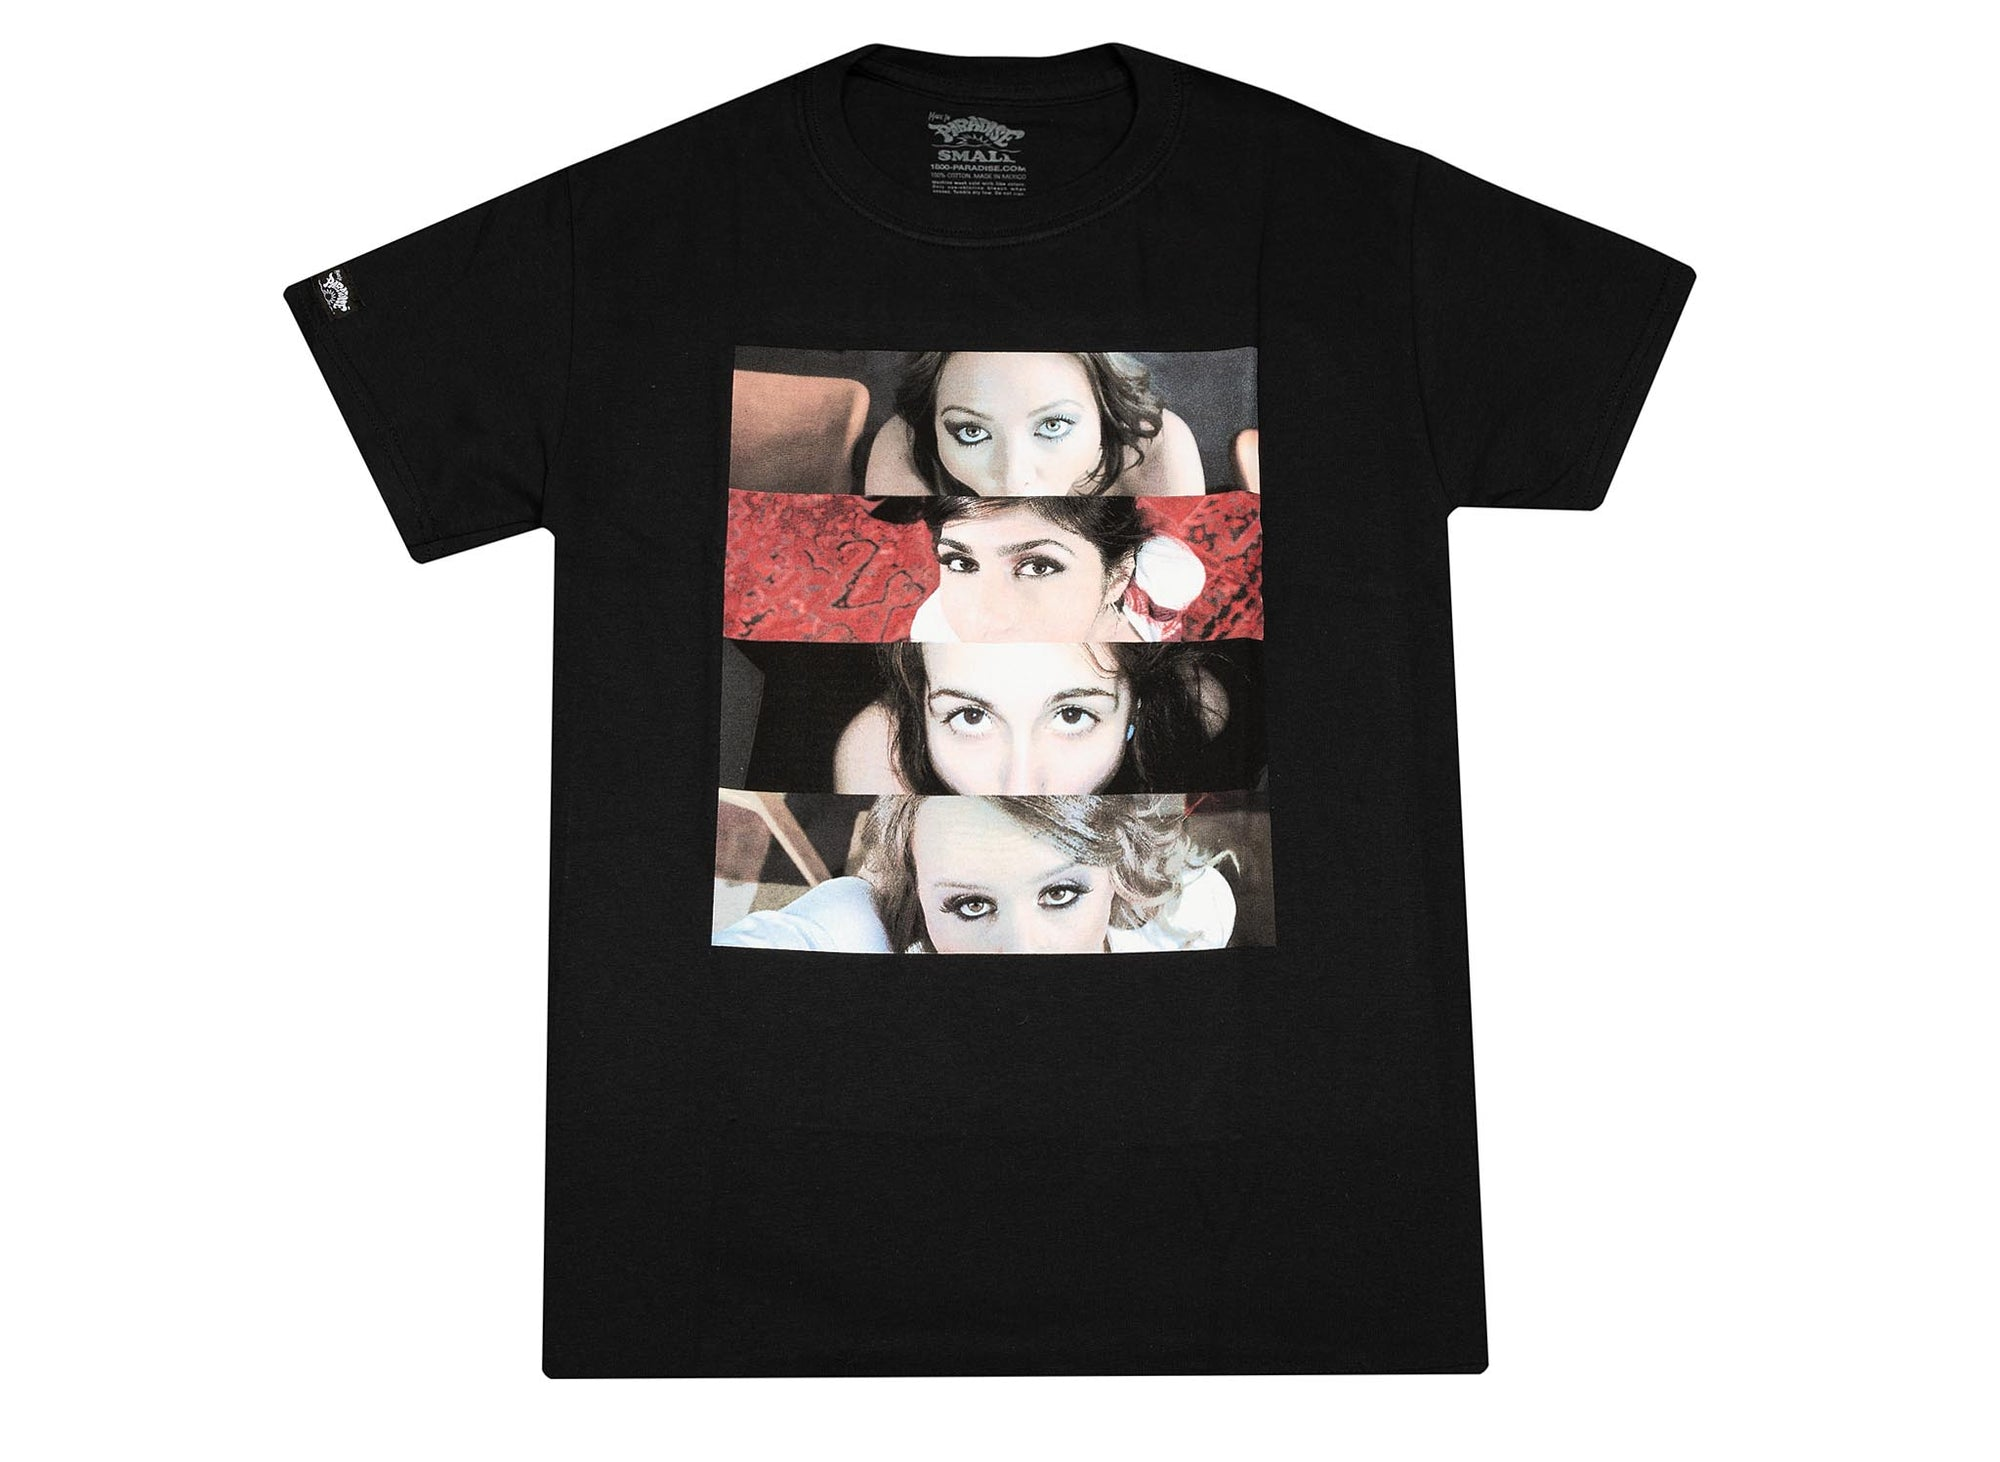 MADE IN PARADISE EYES WIDE SHUT T-SHIRT